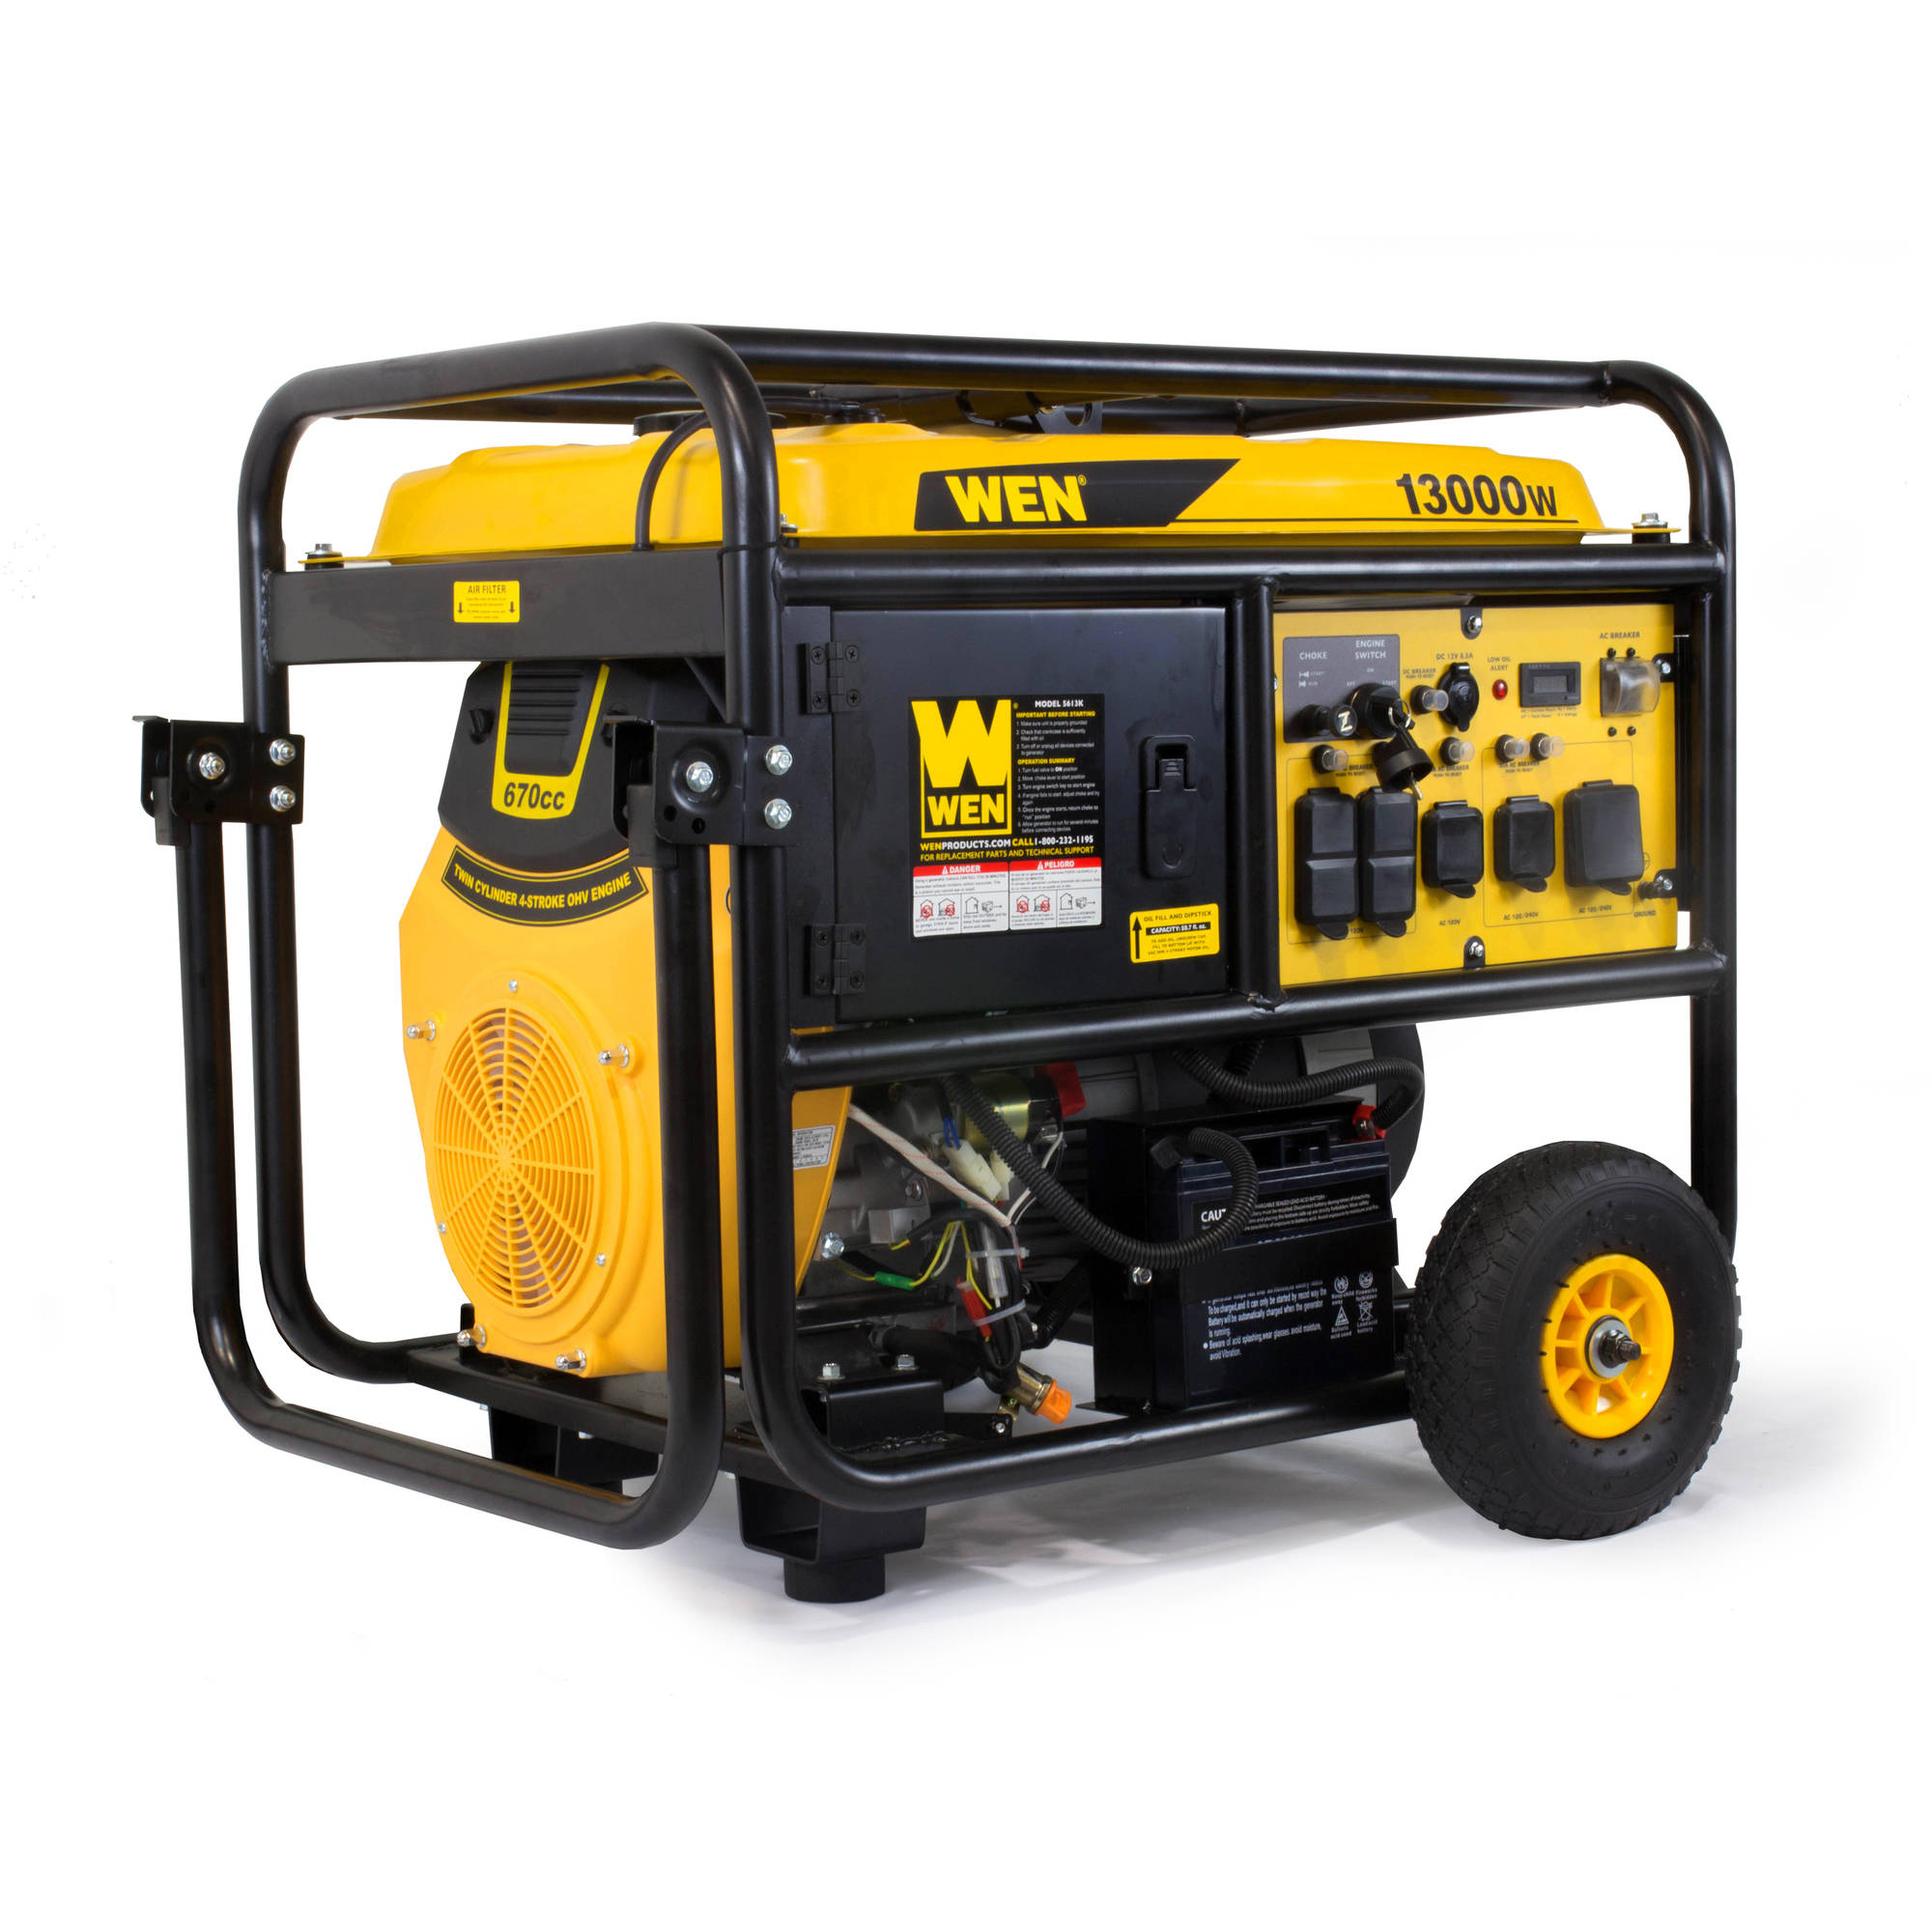 WEN W Portable Standby Generator with Wheel Kit and Electric